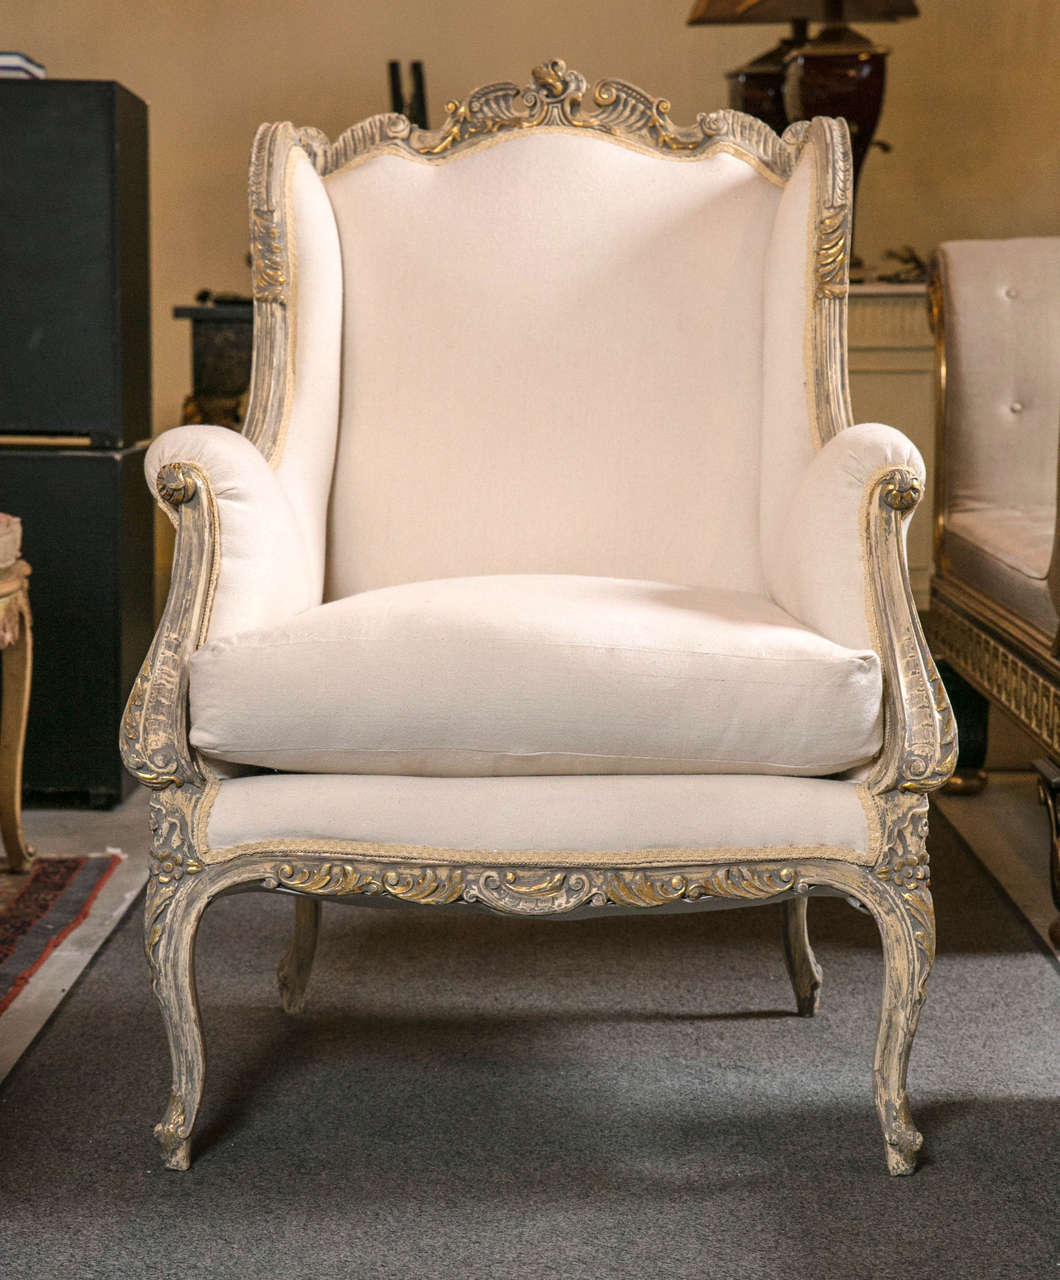 Bergere chair french rococo - Pair Of French Rococo Style Wingback Berg Re Chairs 2